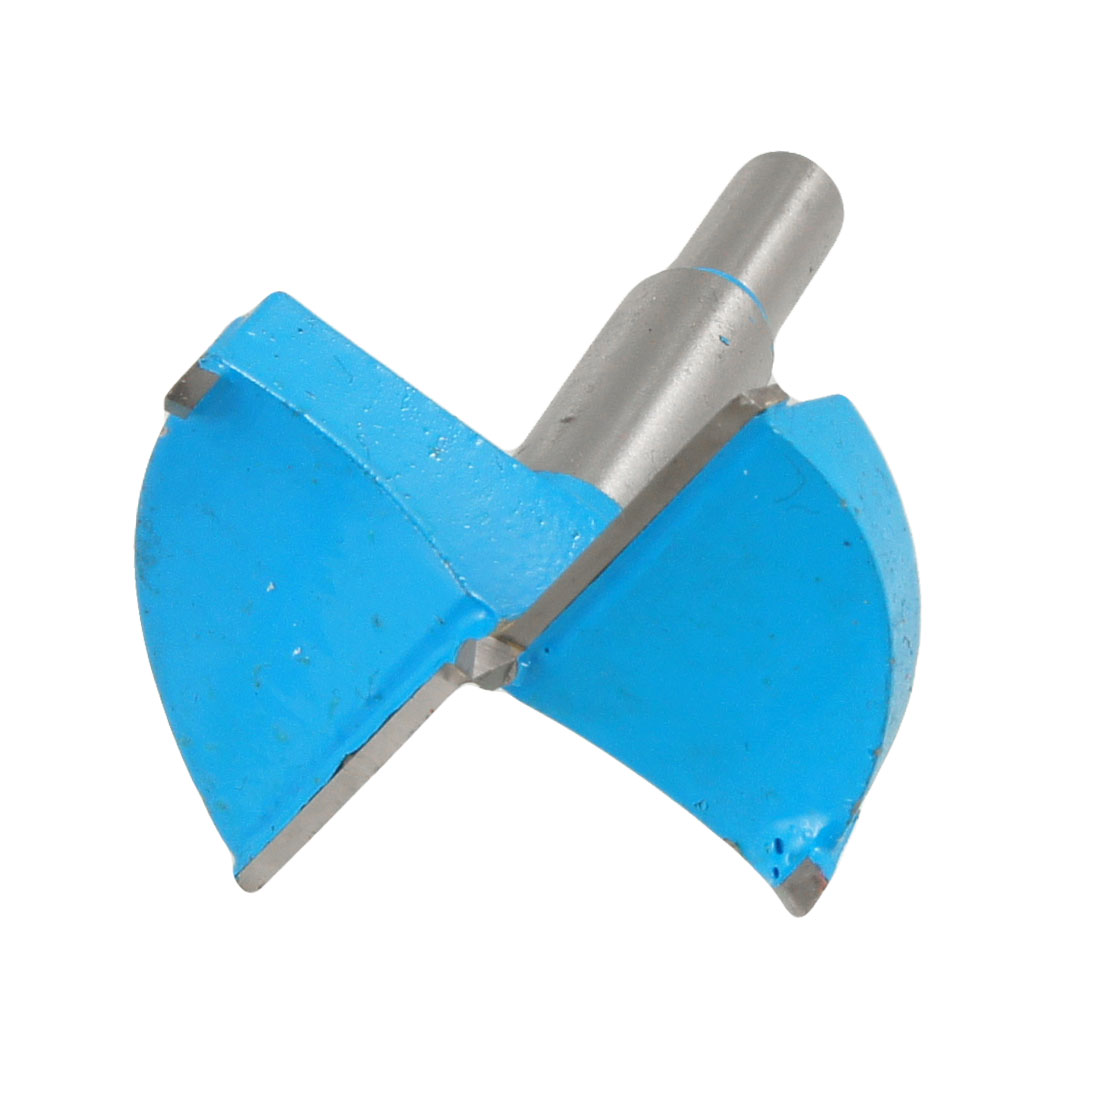 Carbide Tip 53mm Diameter Wood Cutting Hinge Boring Bit for Woodworker